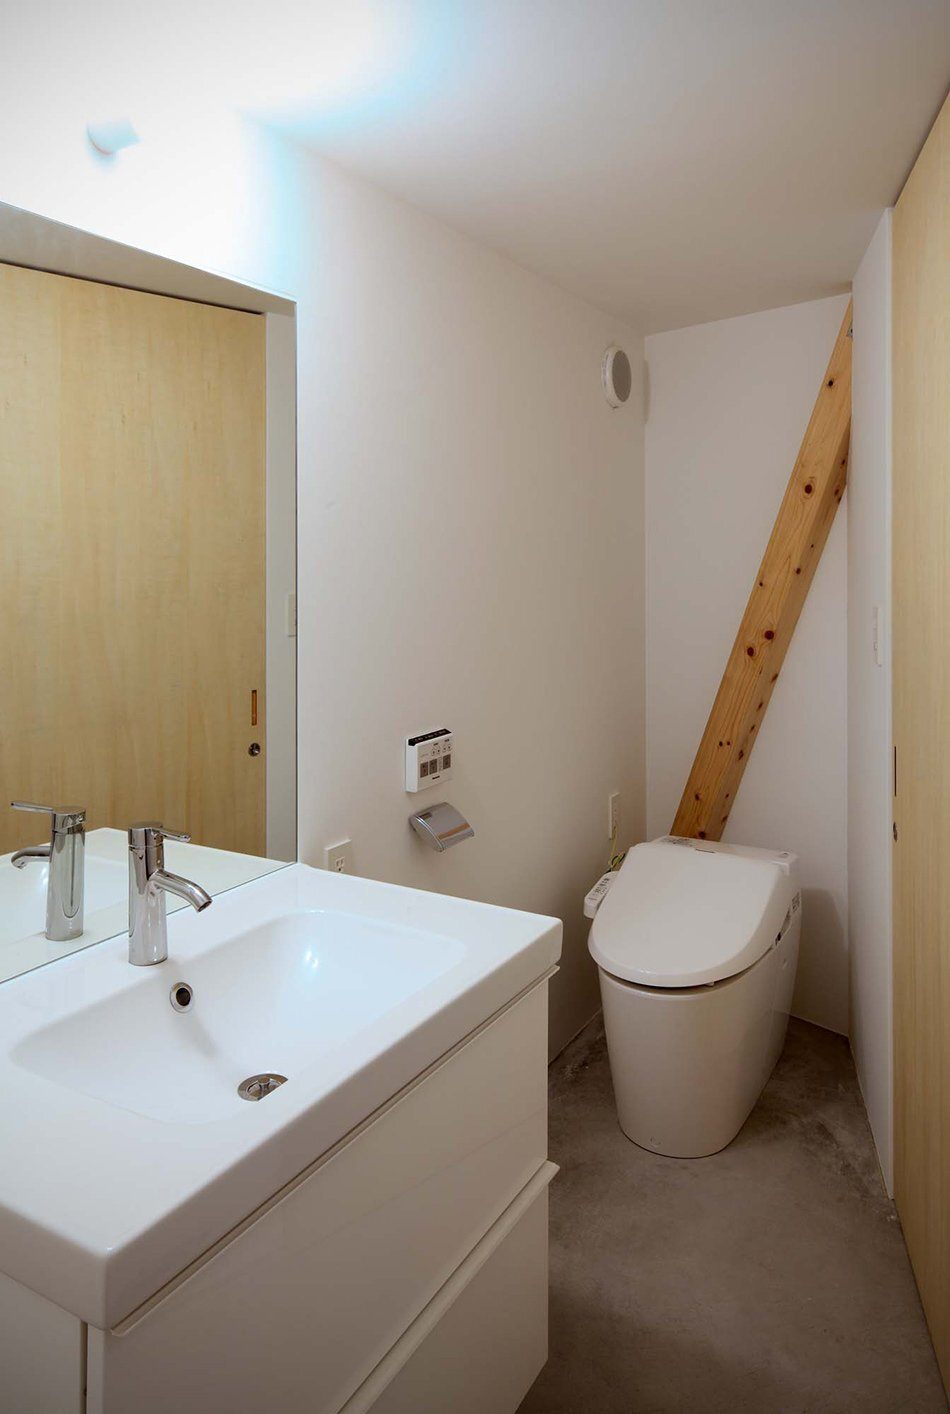 New Kyoto Town House - Alphaville - Japan - Bathroom - Humble Homes